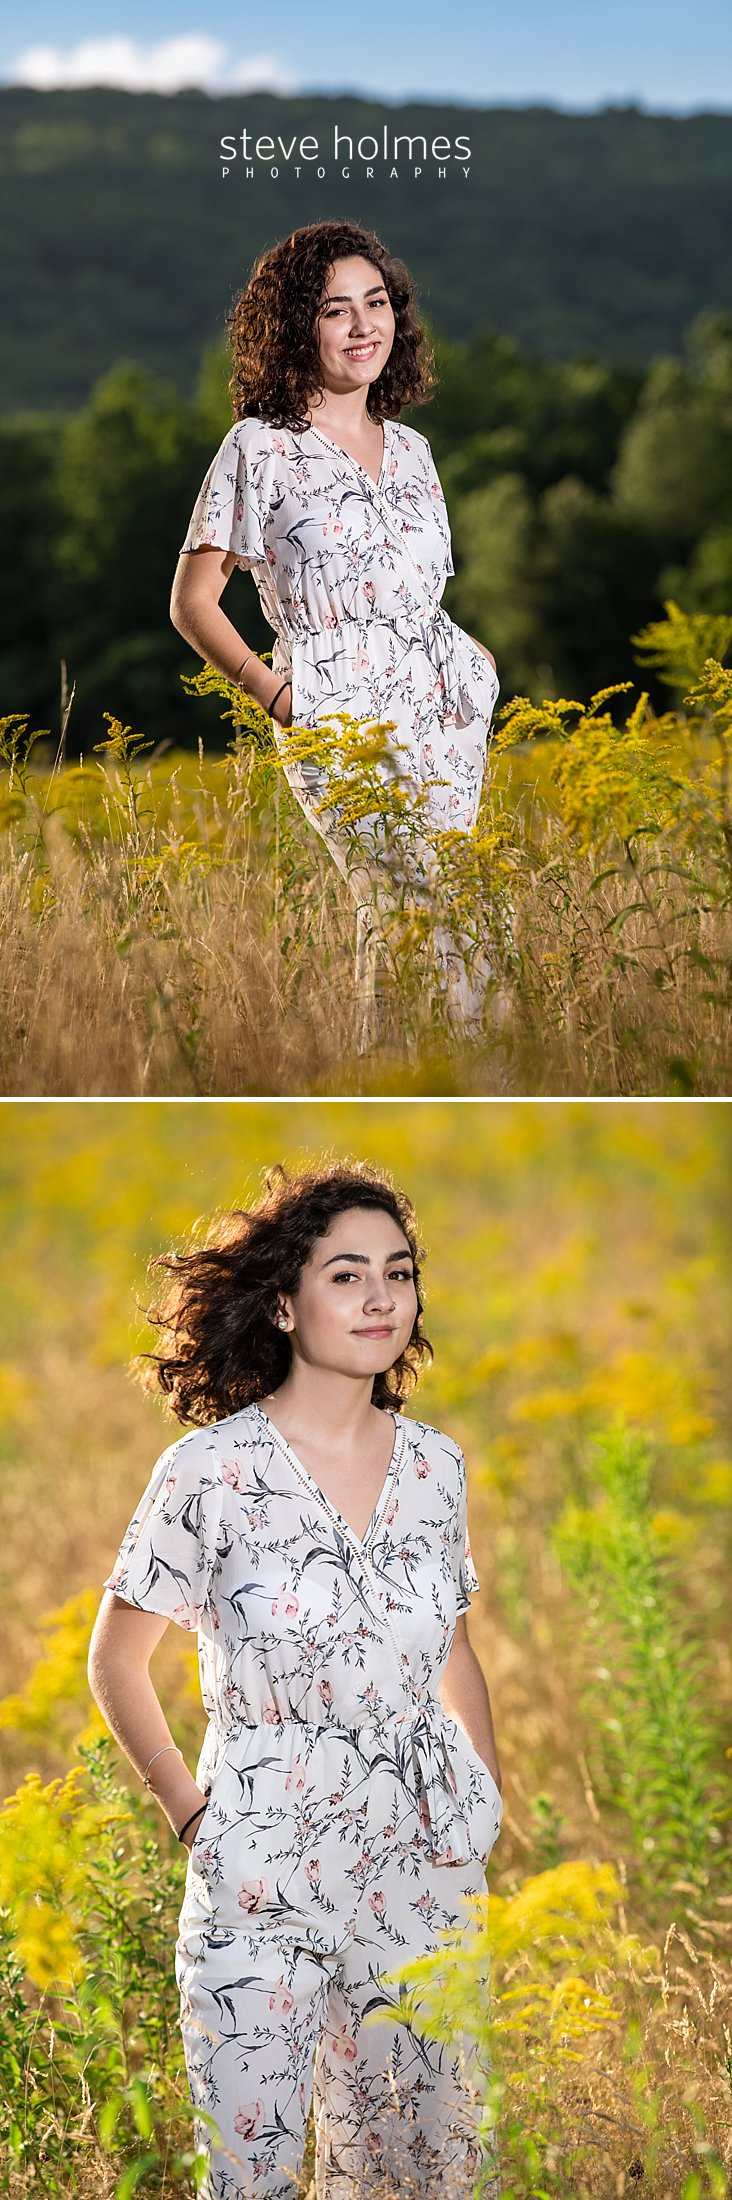 08_Curly haired brunette in jumper smiles for senior photo in New England field.jpg